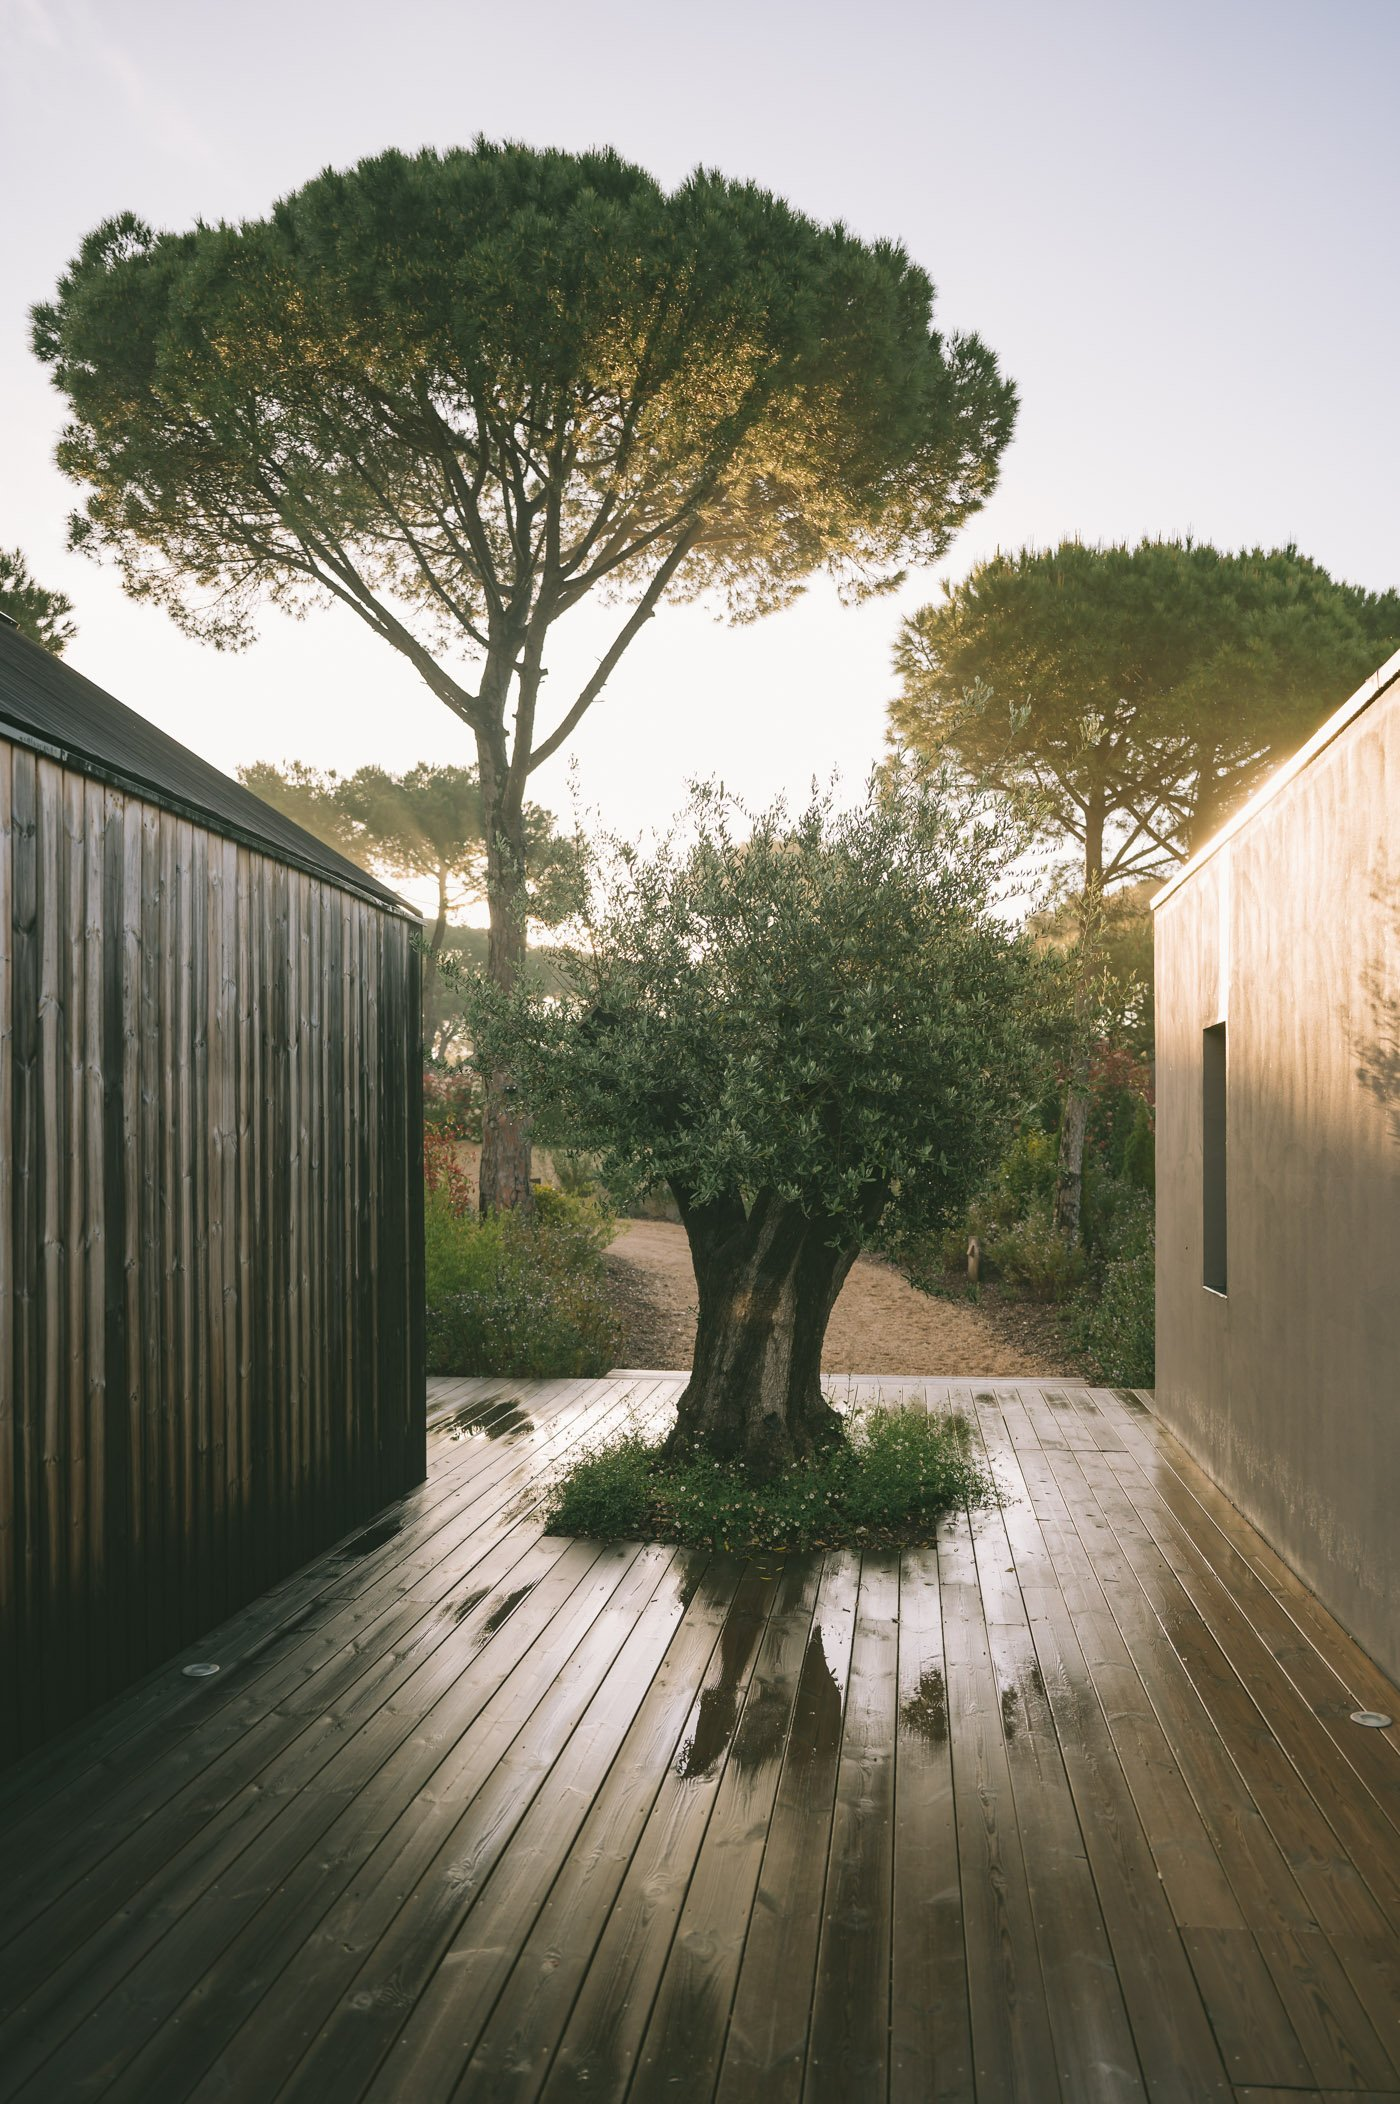 Our villa at Sublime Comporta after a short nightly rain in April.